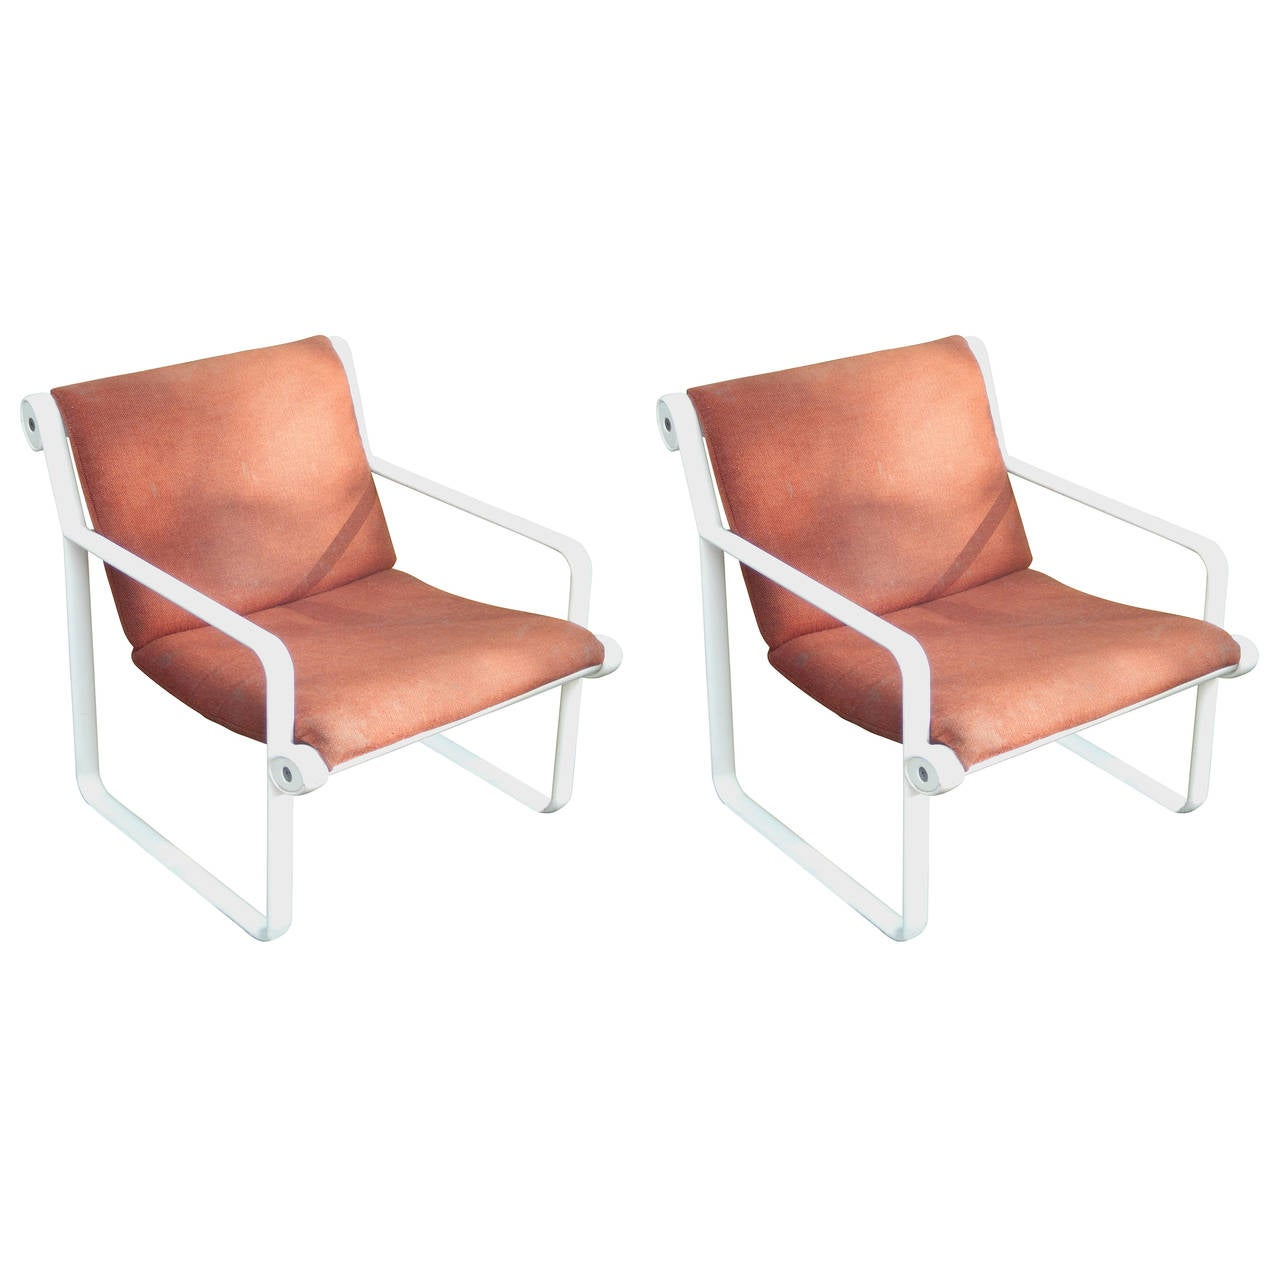 Pair Of Aluminum Hannah U0026 Morrison Sling Chairs For Knoll 1